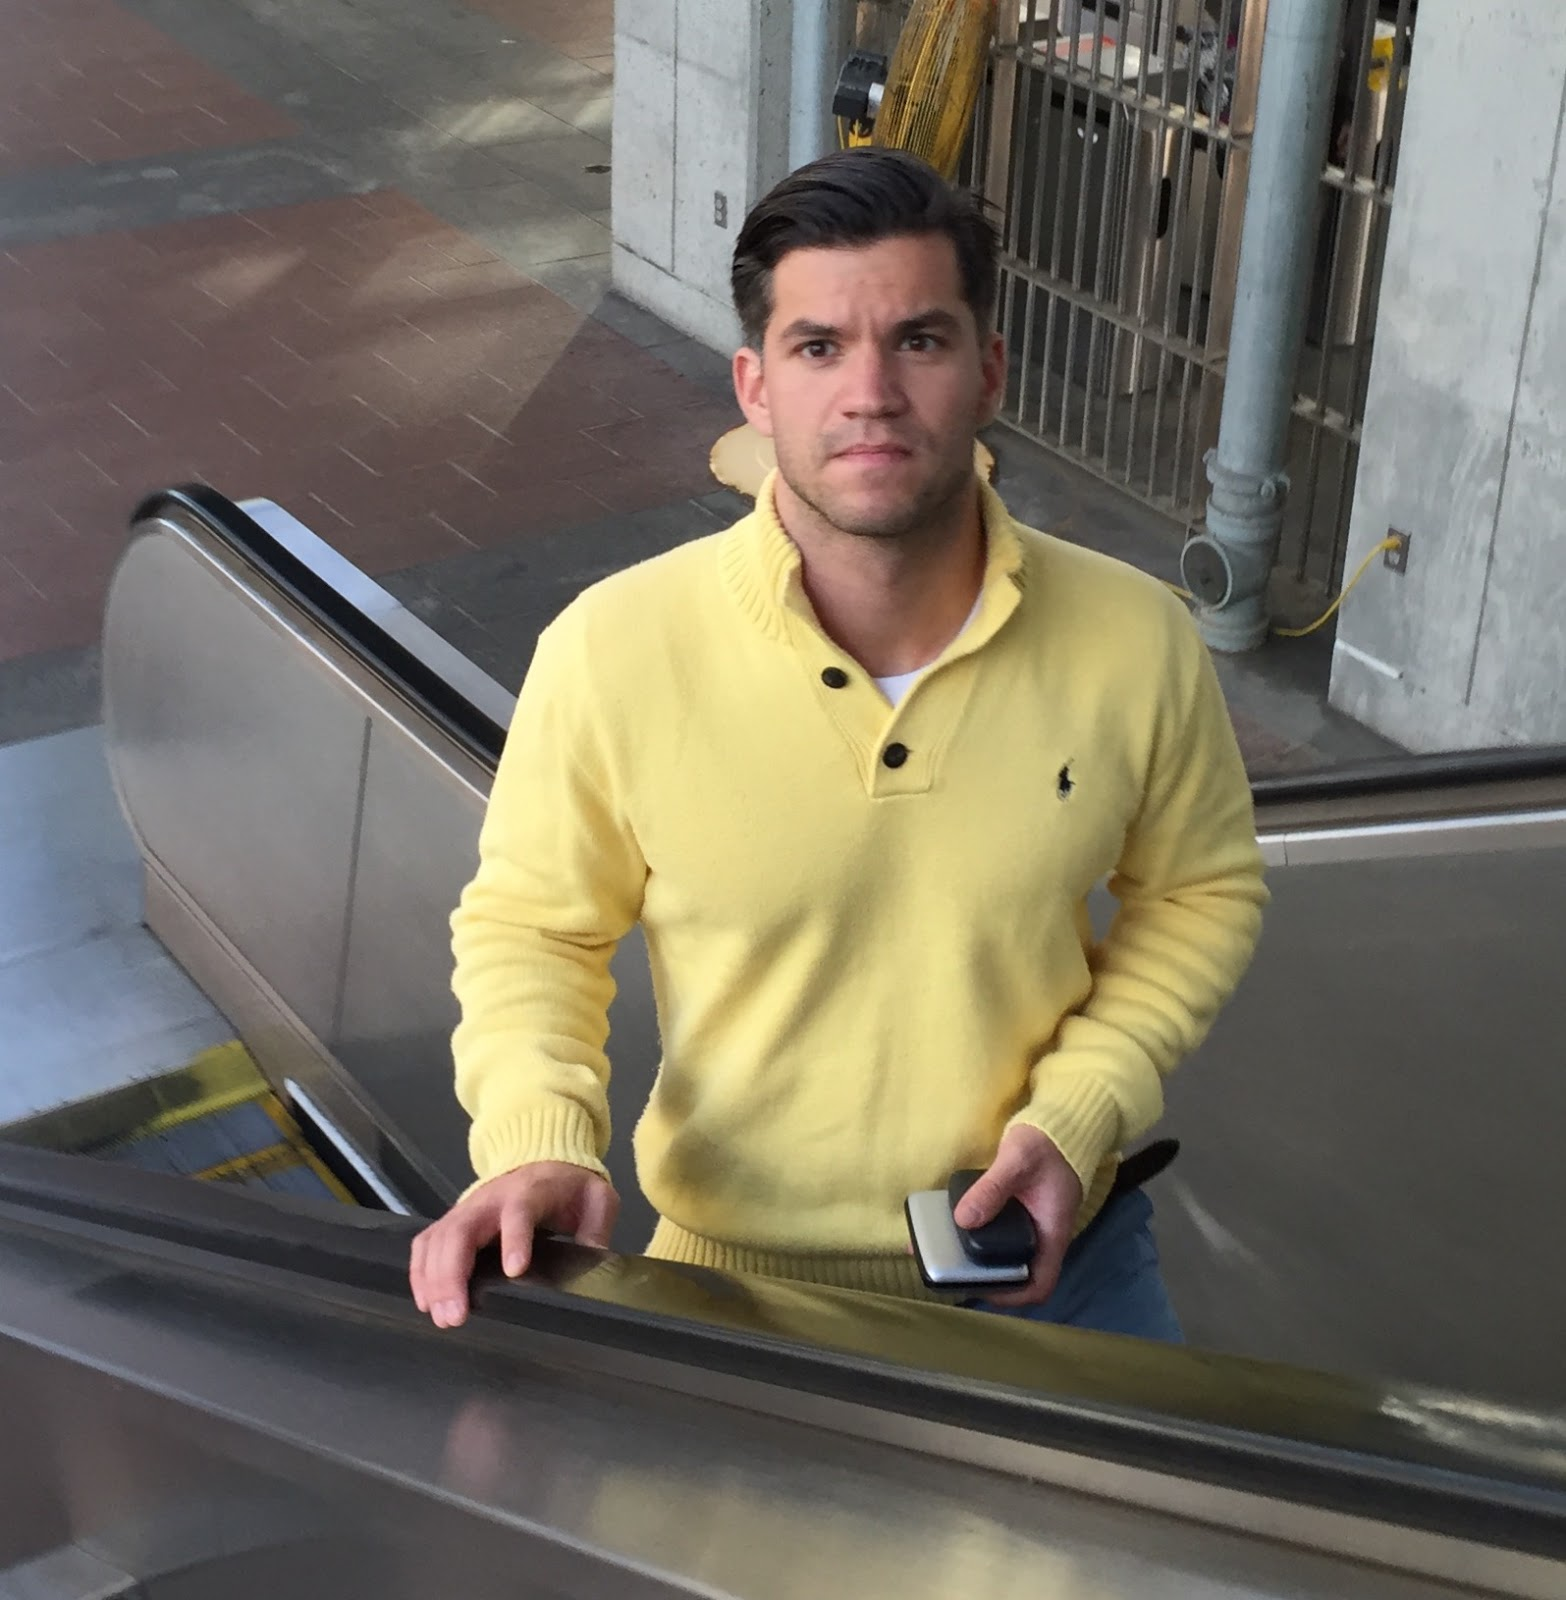 Men In Lemon Yellow Always Standout And This Standout Hottie Ascending A T Escalator Looks Ever So Delicious In His Creamy Lemon Pullover Polo Sweater